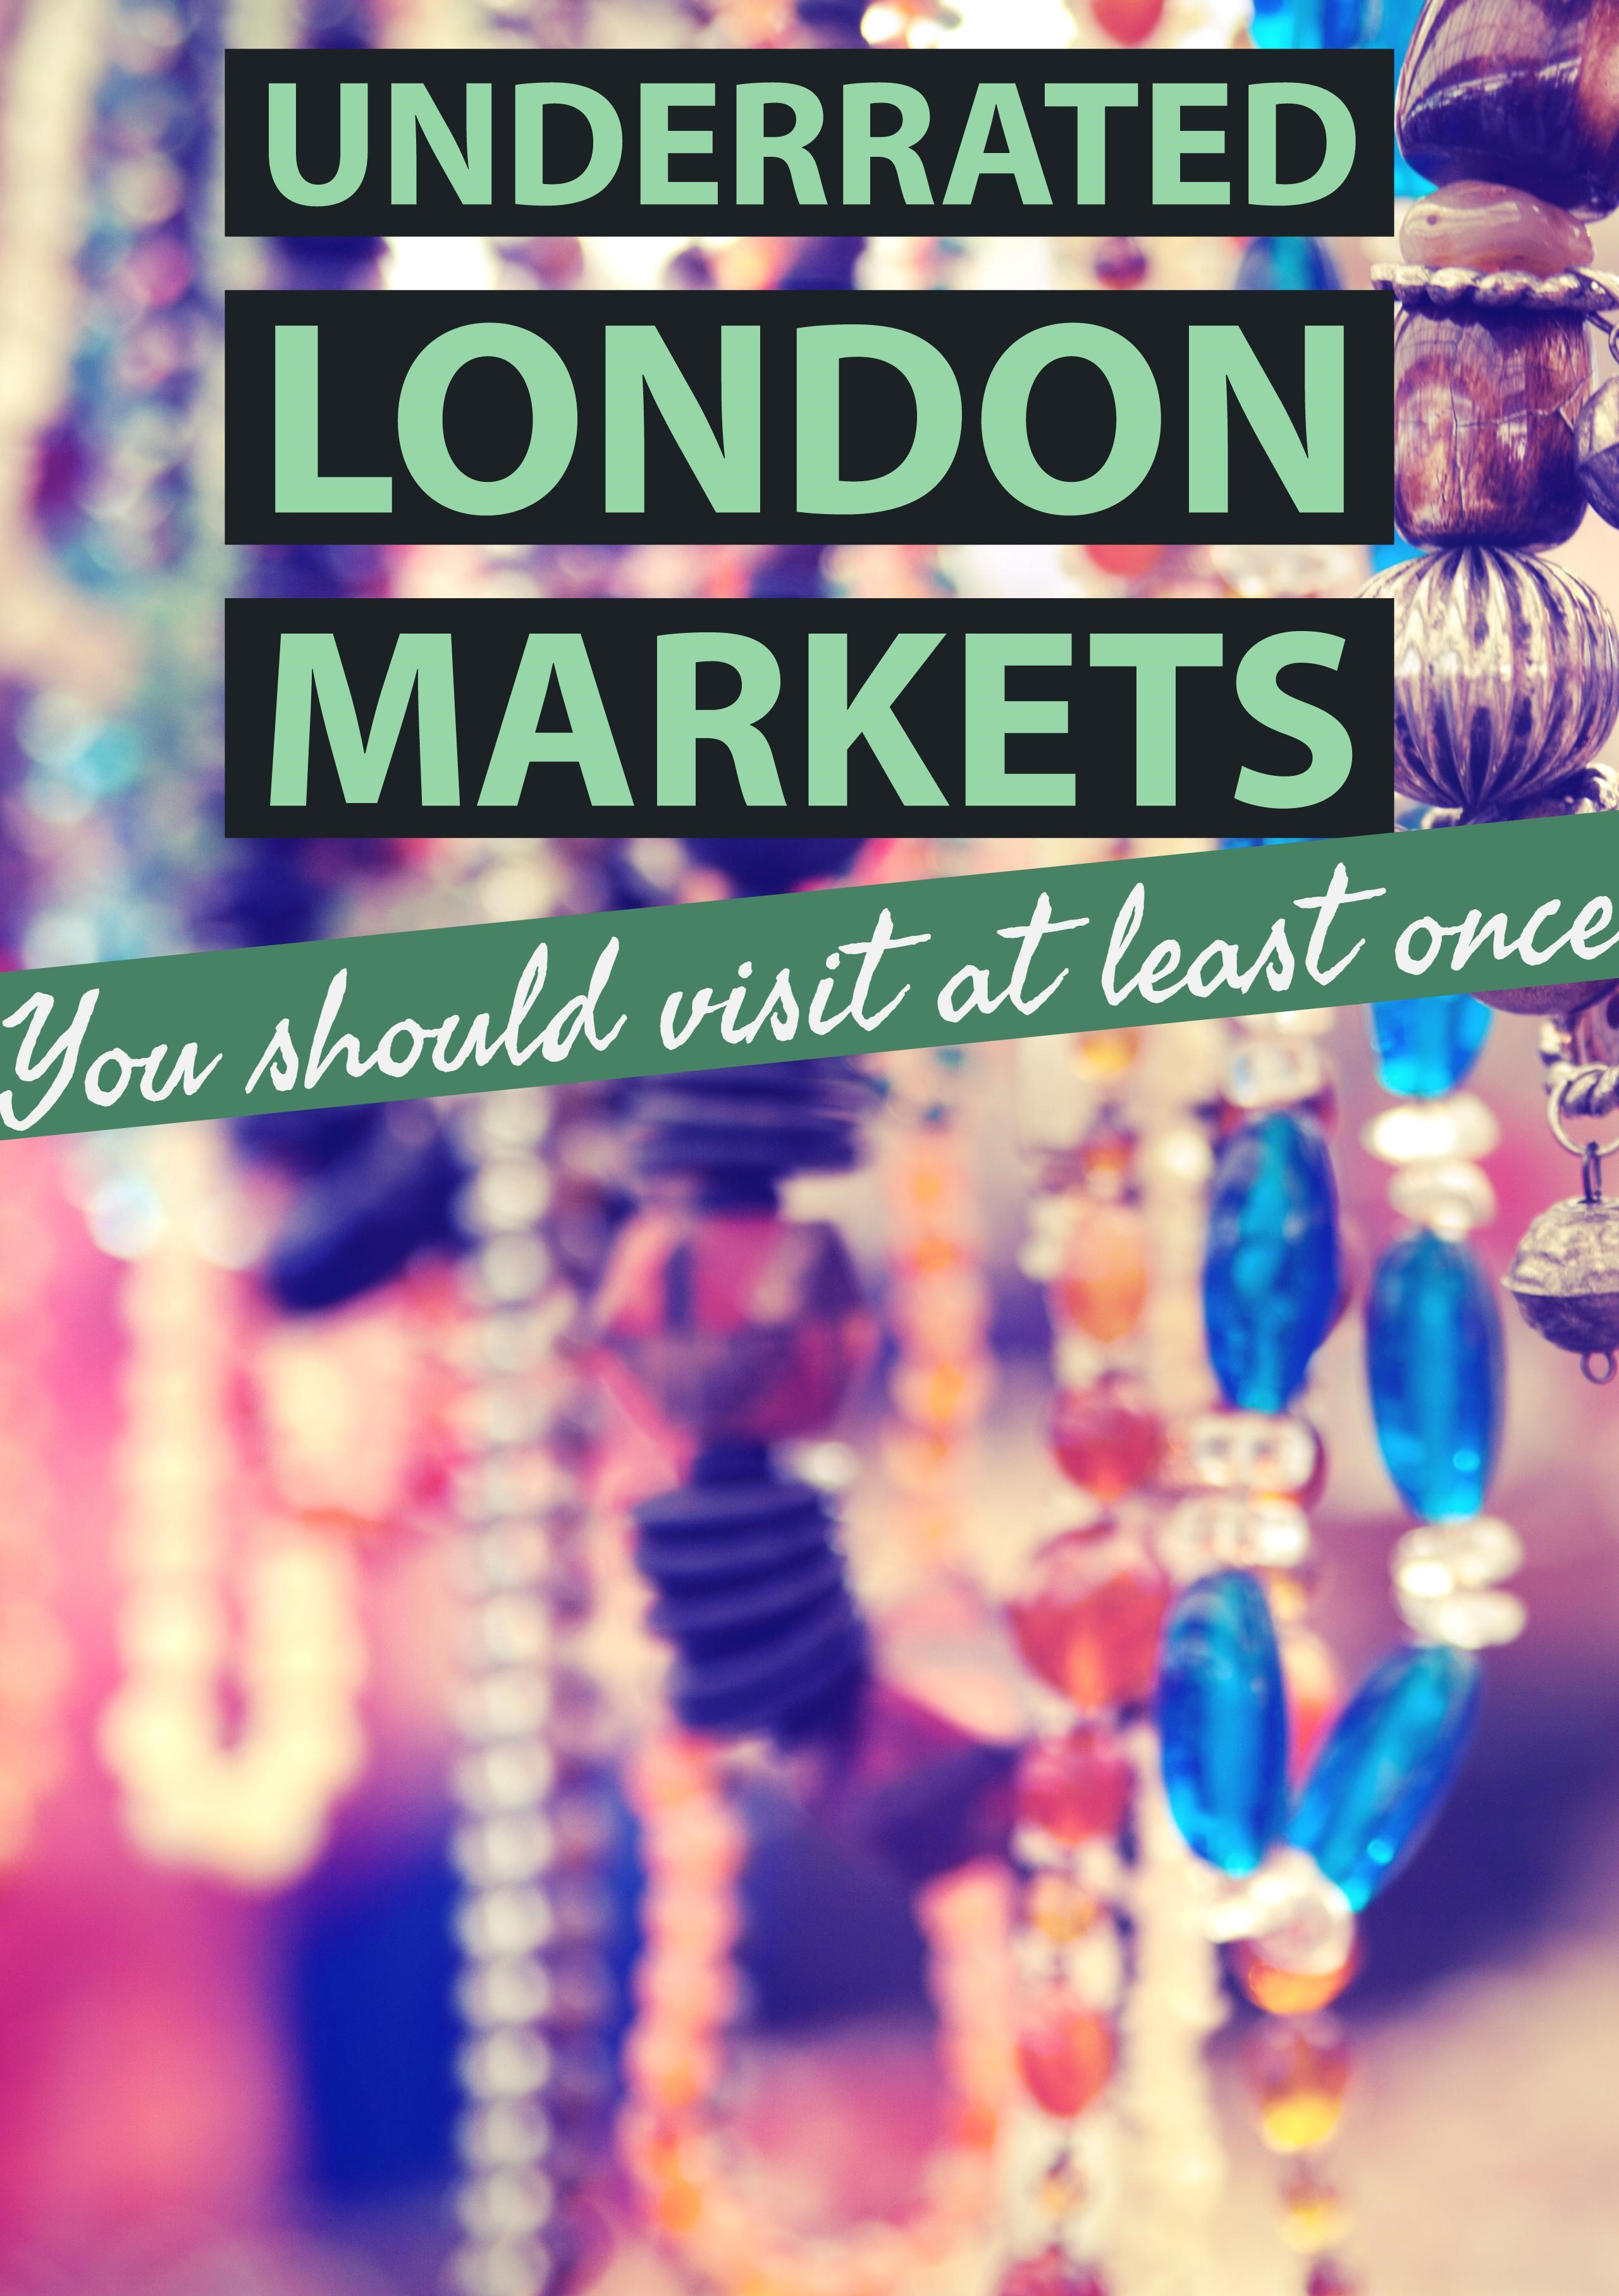 Underrated London markets you should visit at least once